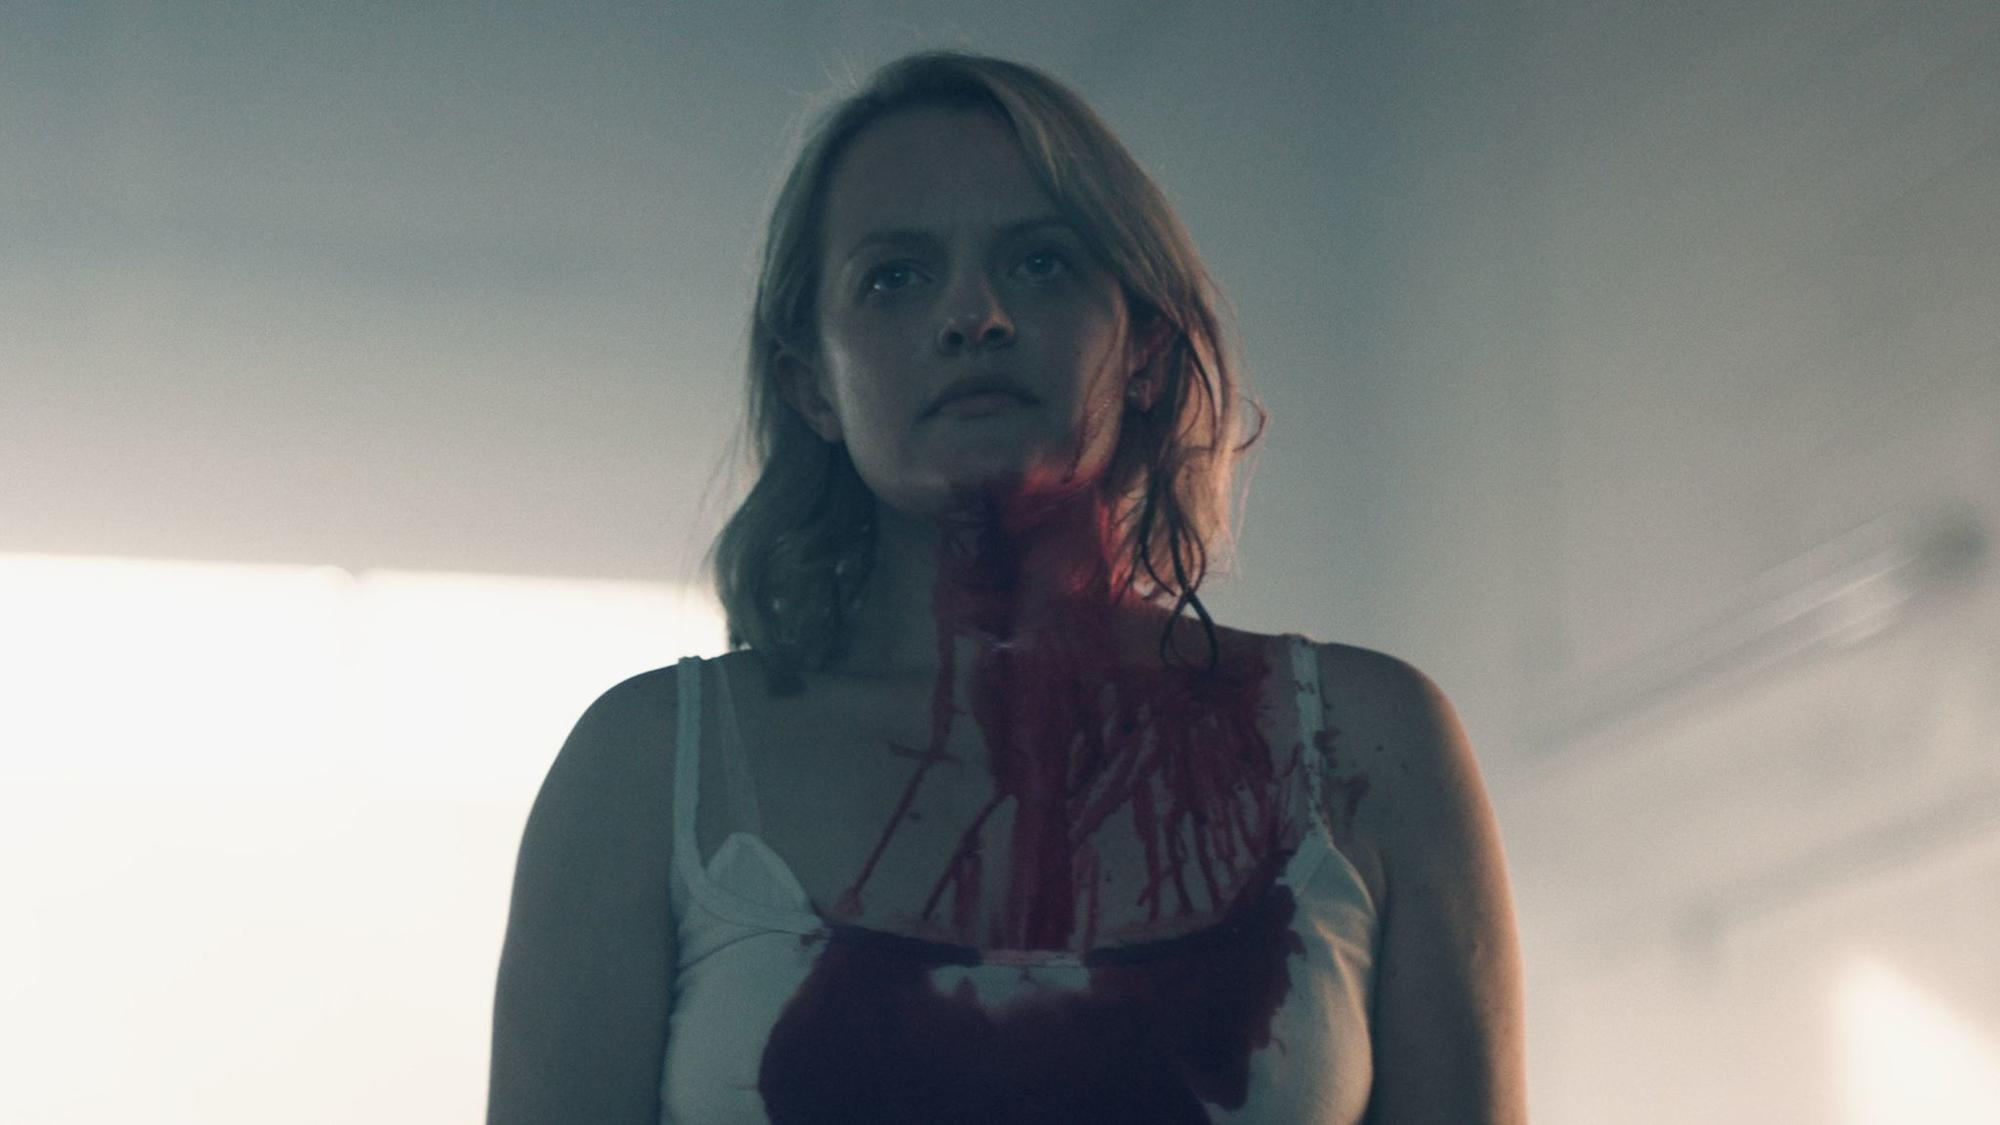 hope in the handmaids tale Everything you need to know about season 2 of hulu's the handmaid's tale here's everything we know about the new season so far fashion i hope is up to them.